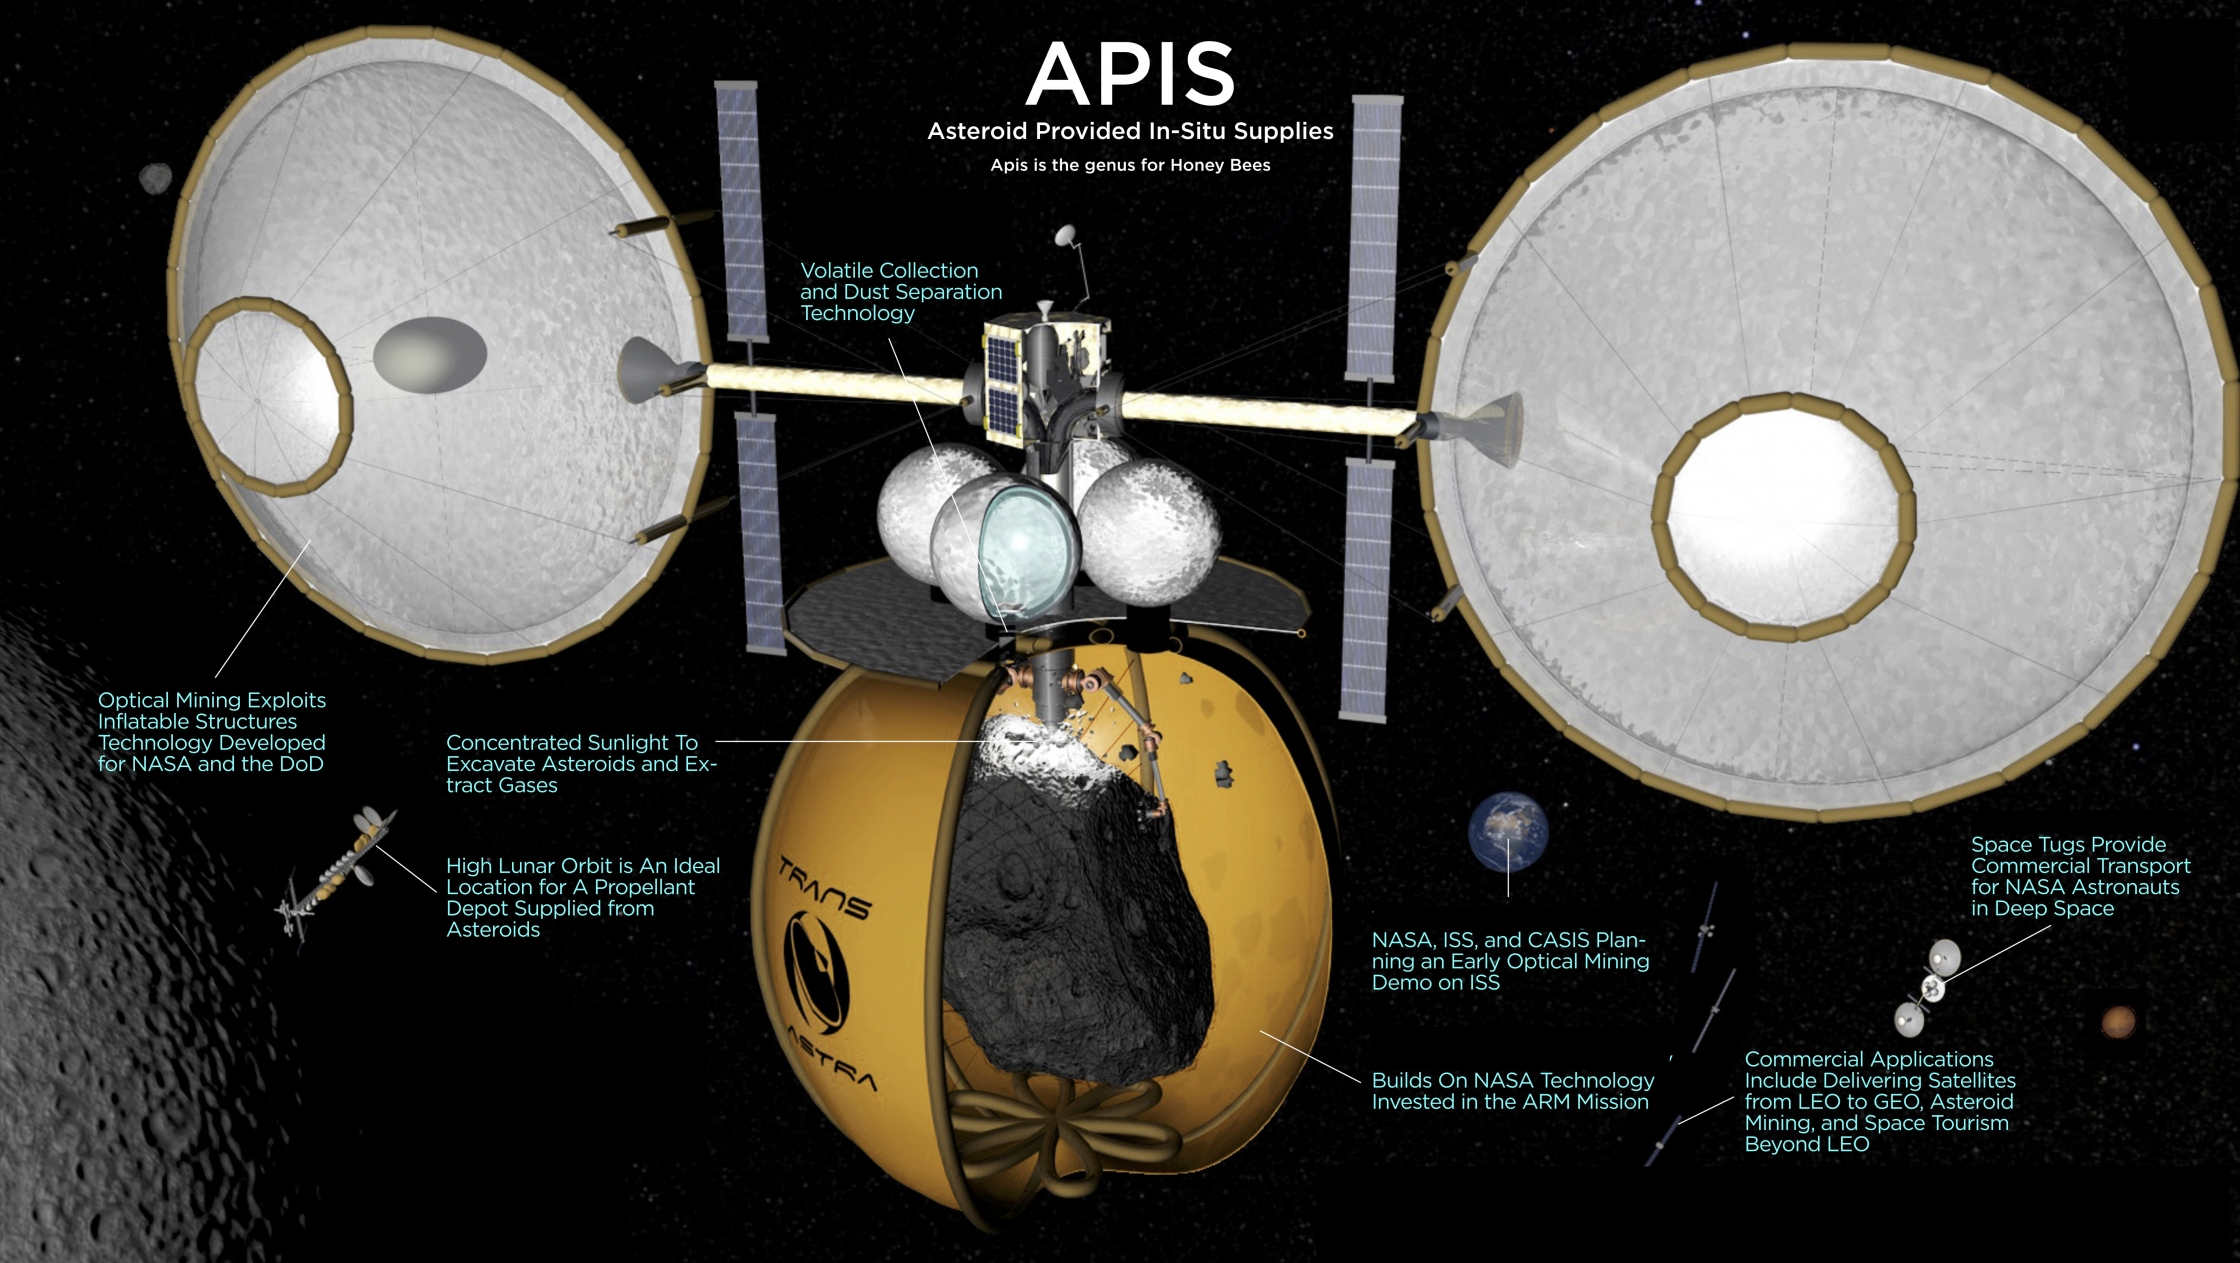 Asteroid-provided in-situ supplies: